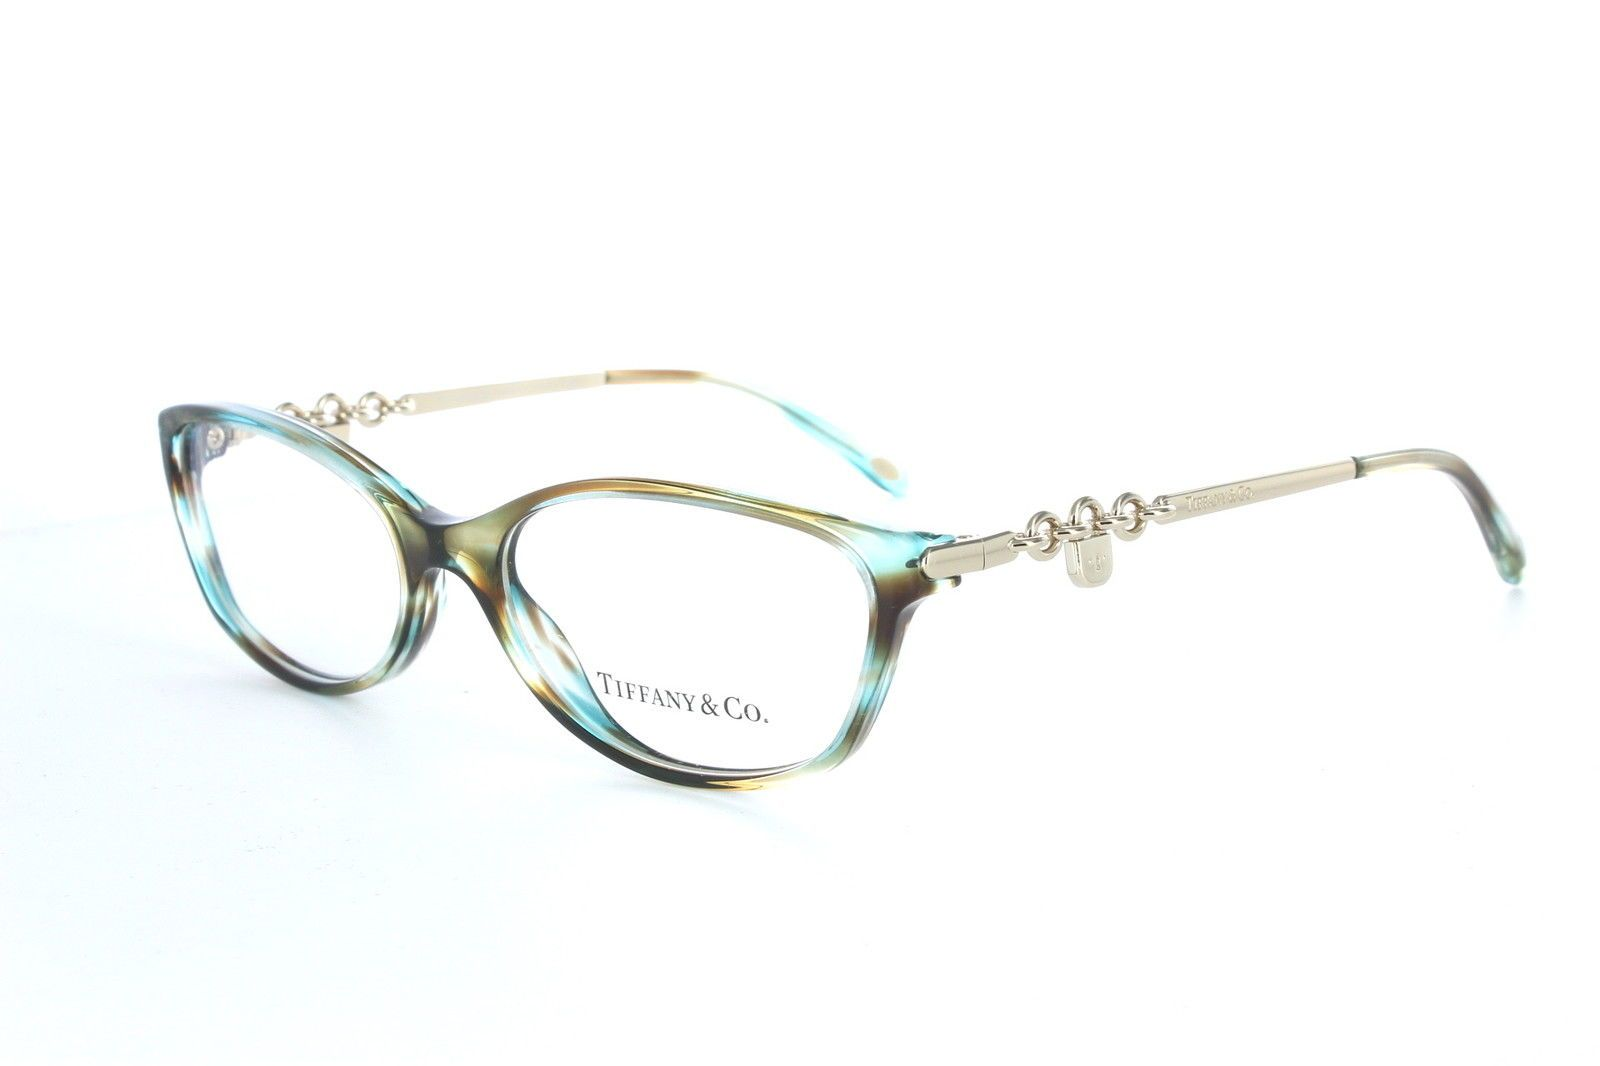 New Tiffany & Co Eyeglasses TF 2063 8124 Ocean Turquoise 52MM Frames ...